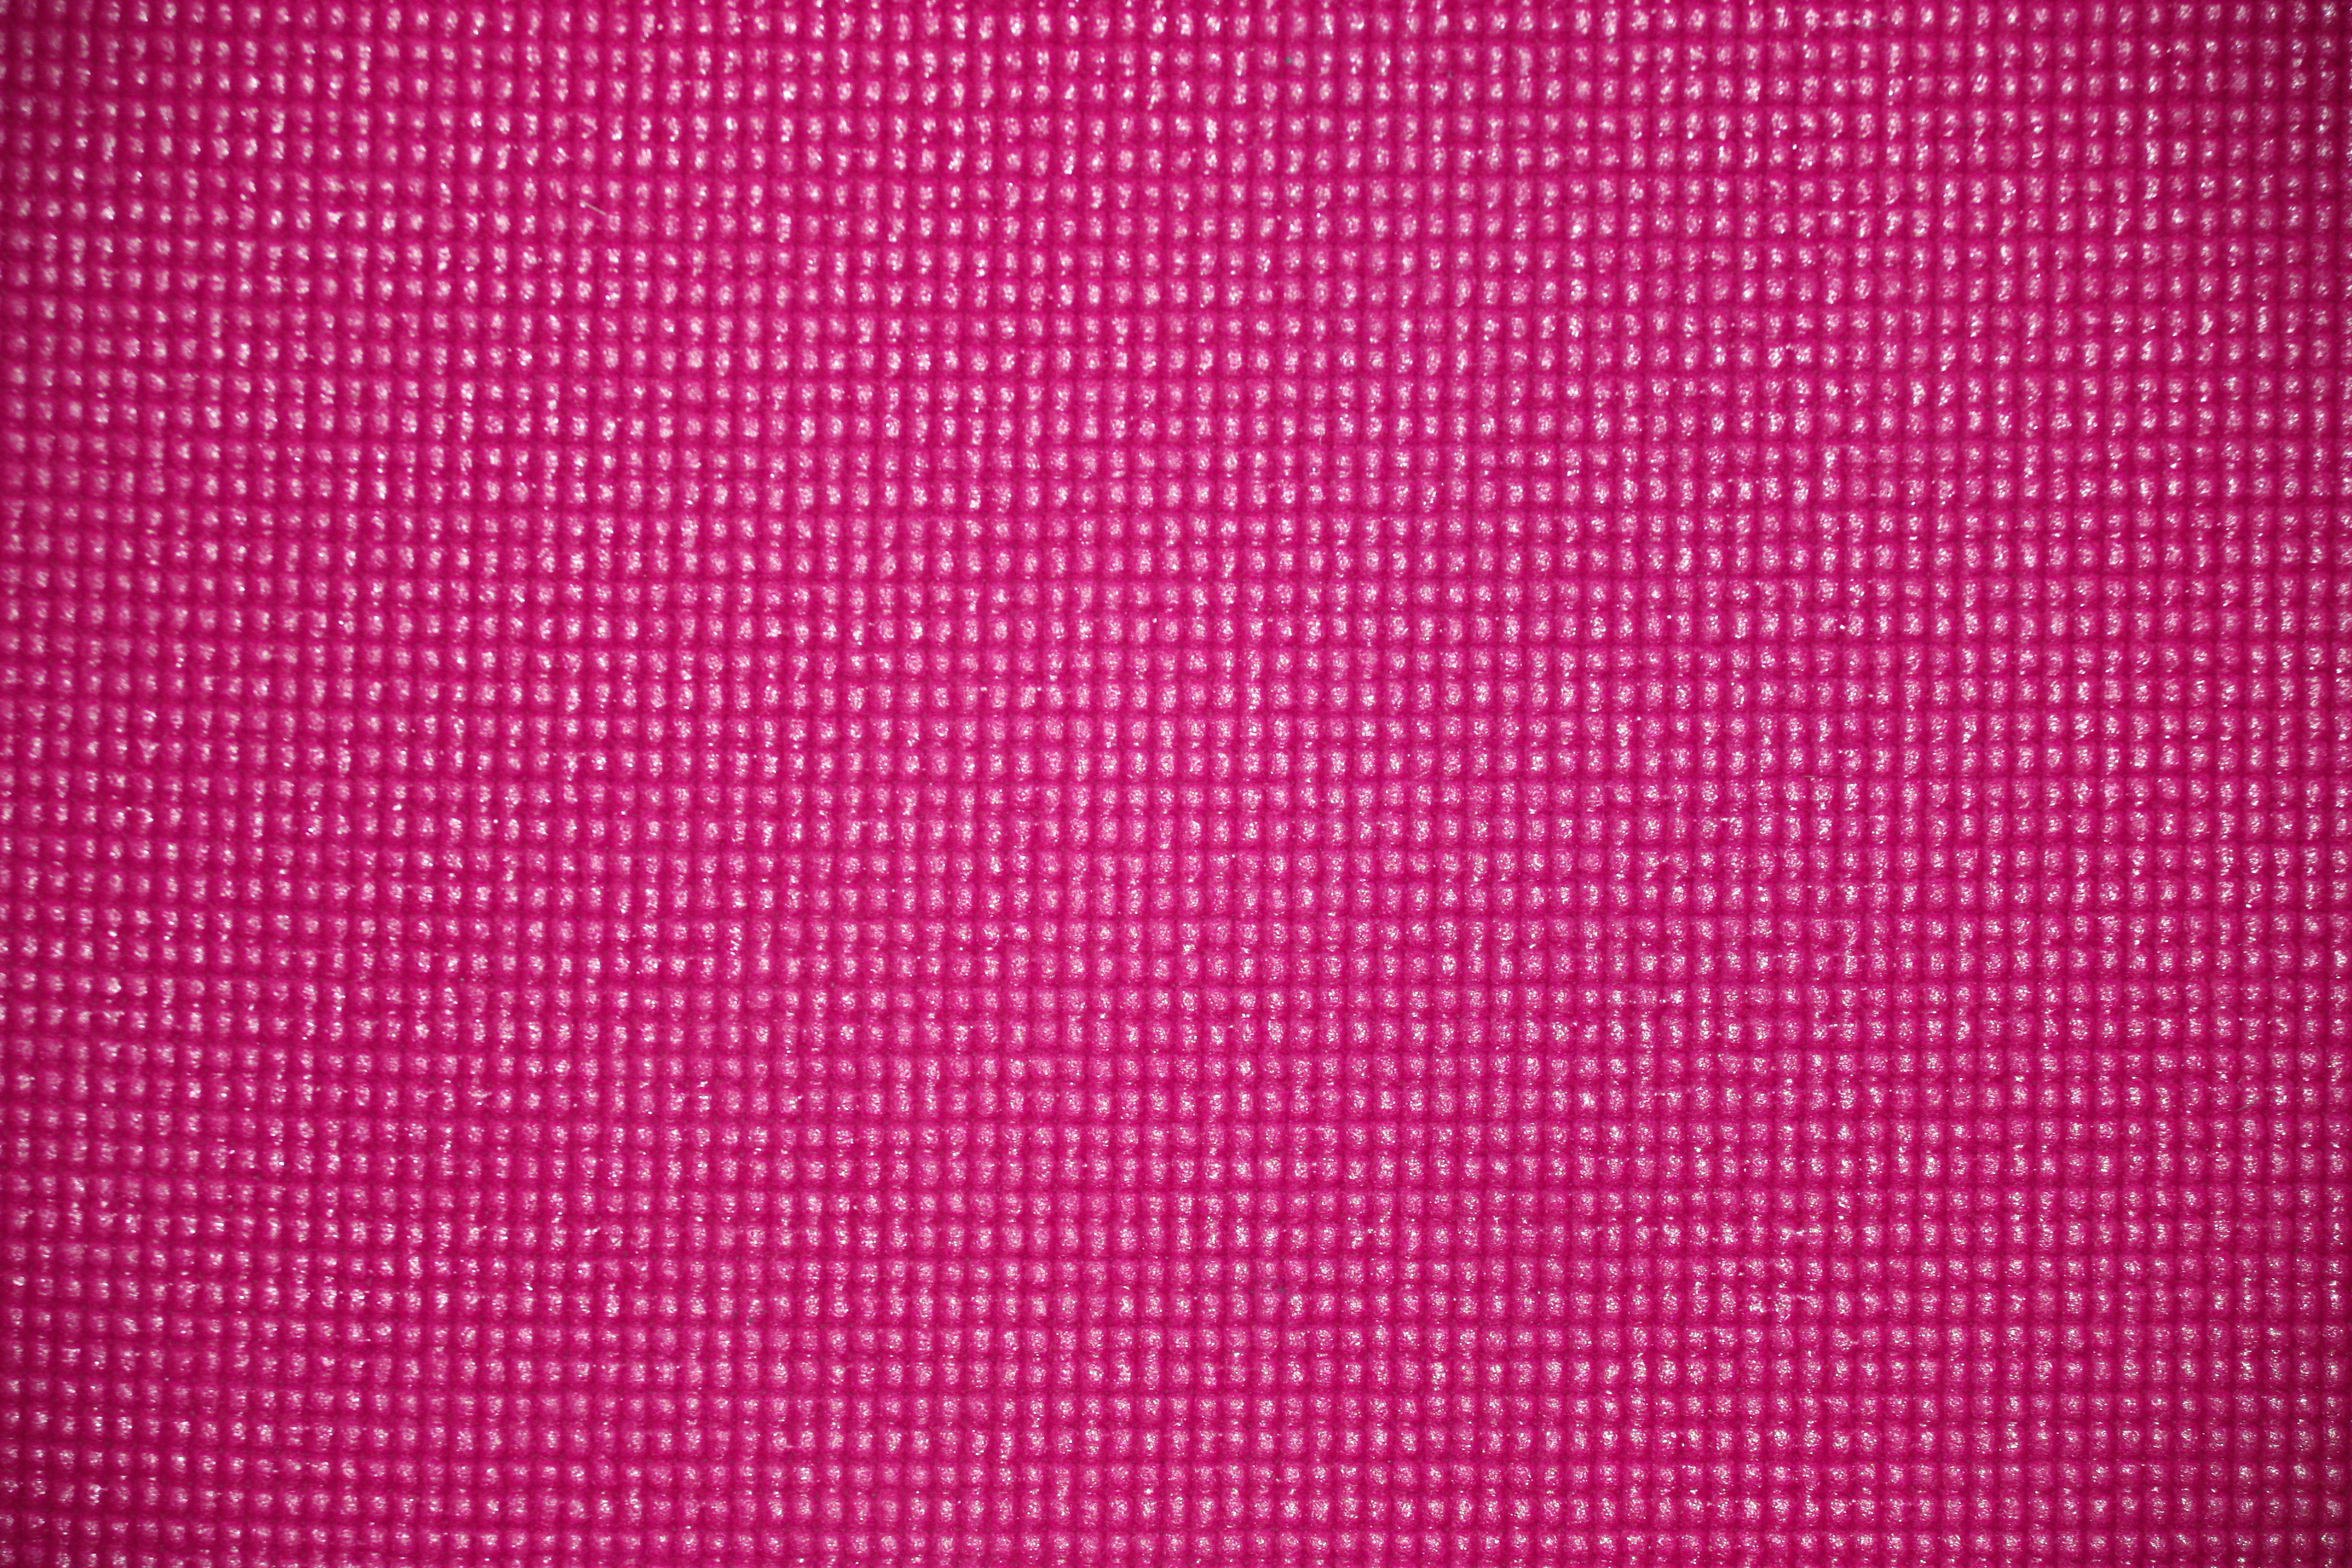 Squares clipart dark pink Hot Pictures Texture Exercise Pink